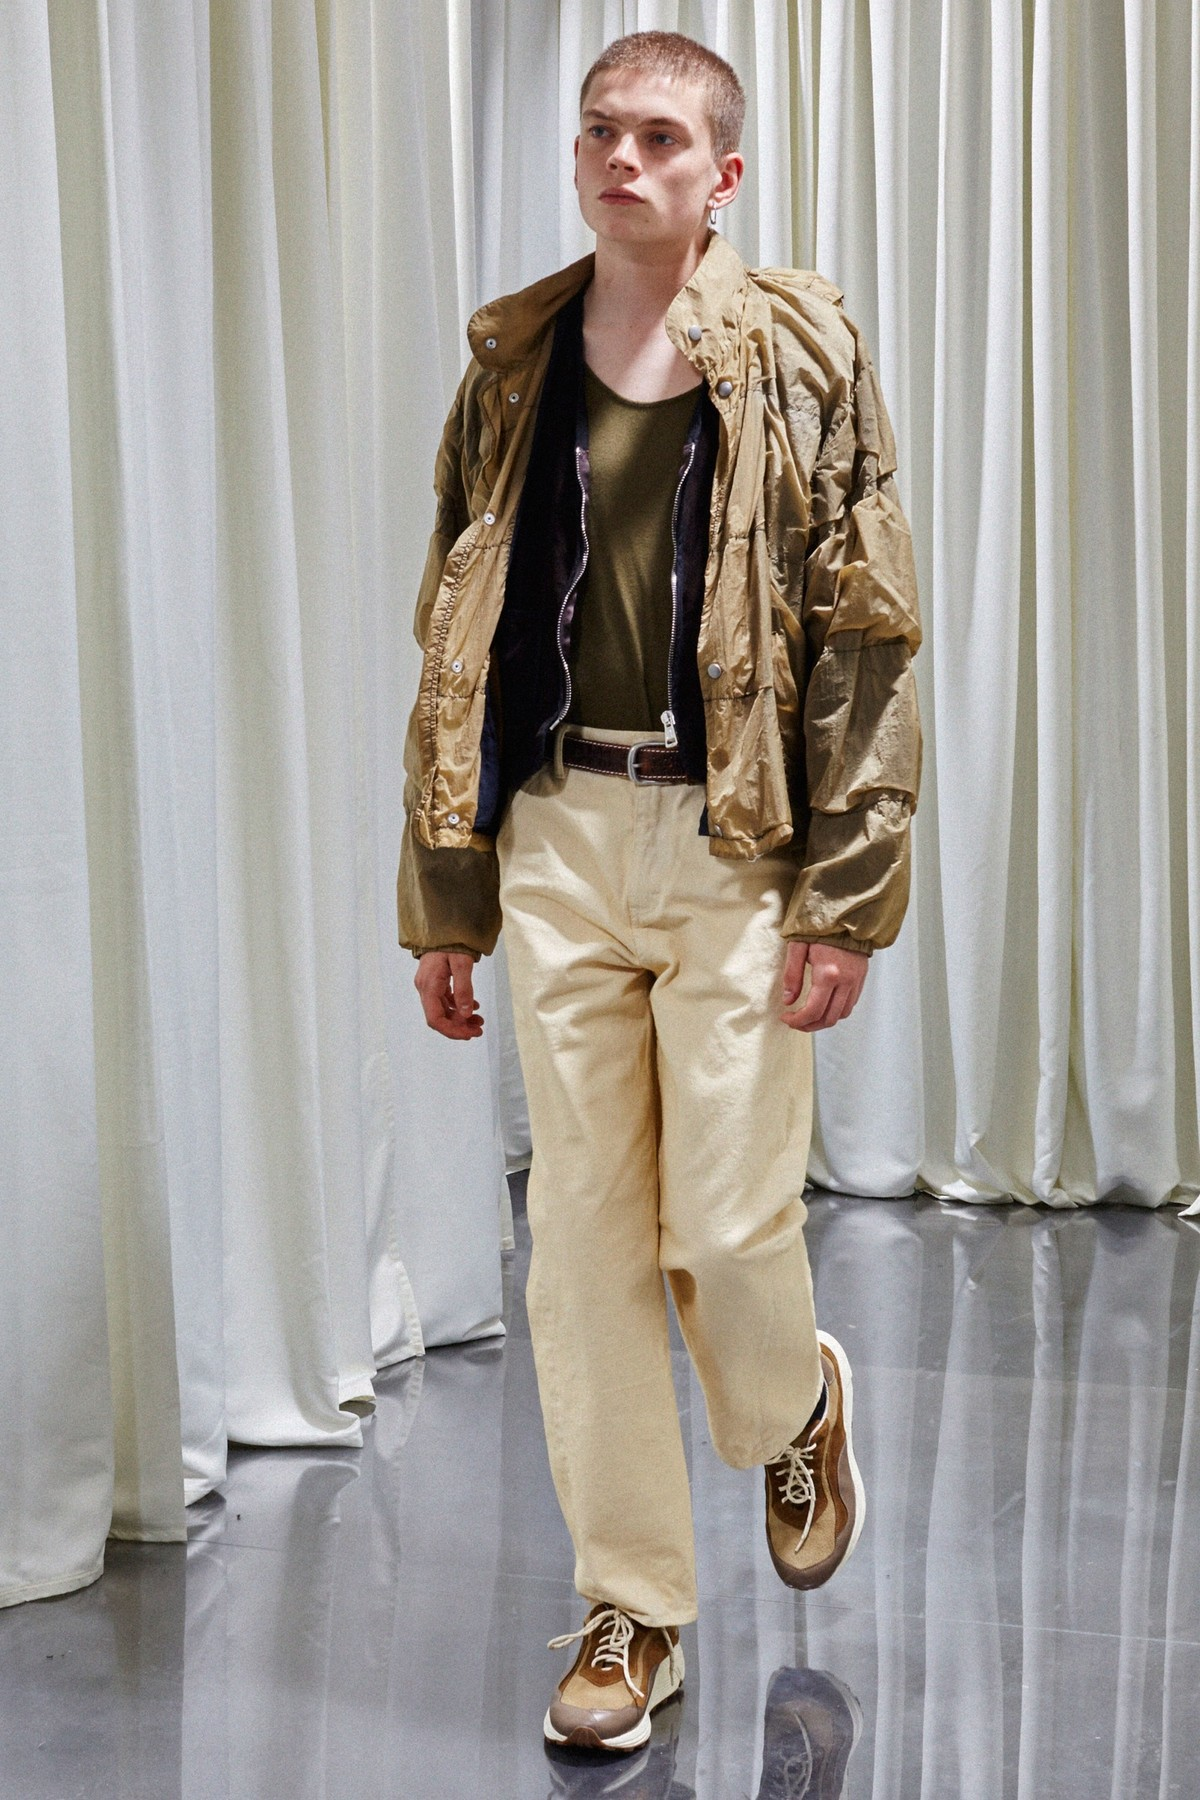 christopherinsulander-our-legacy-ss18-29455d40_w2880.jpg